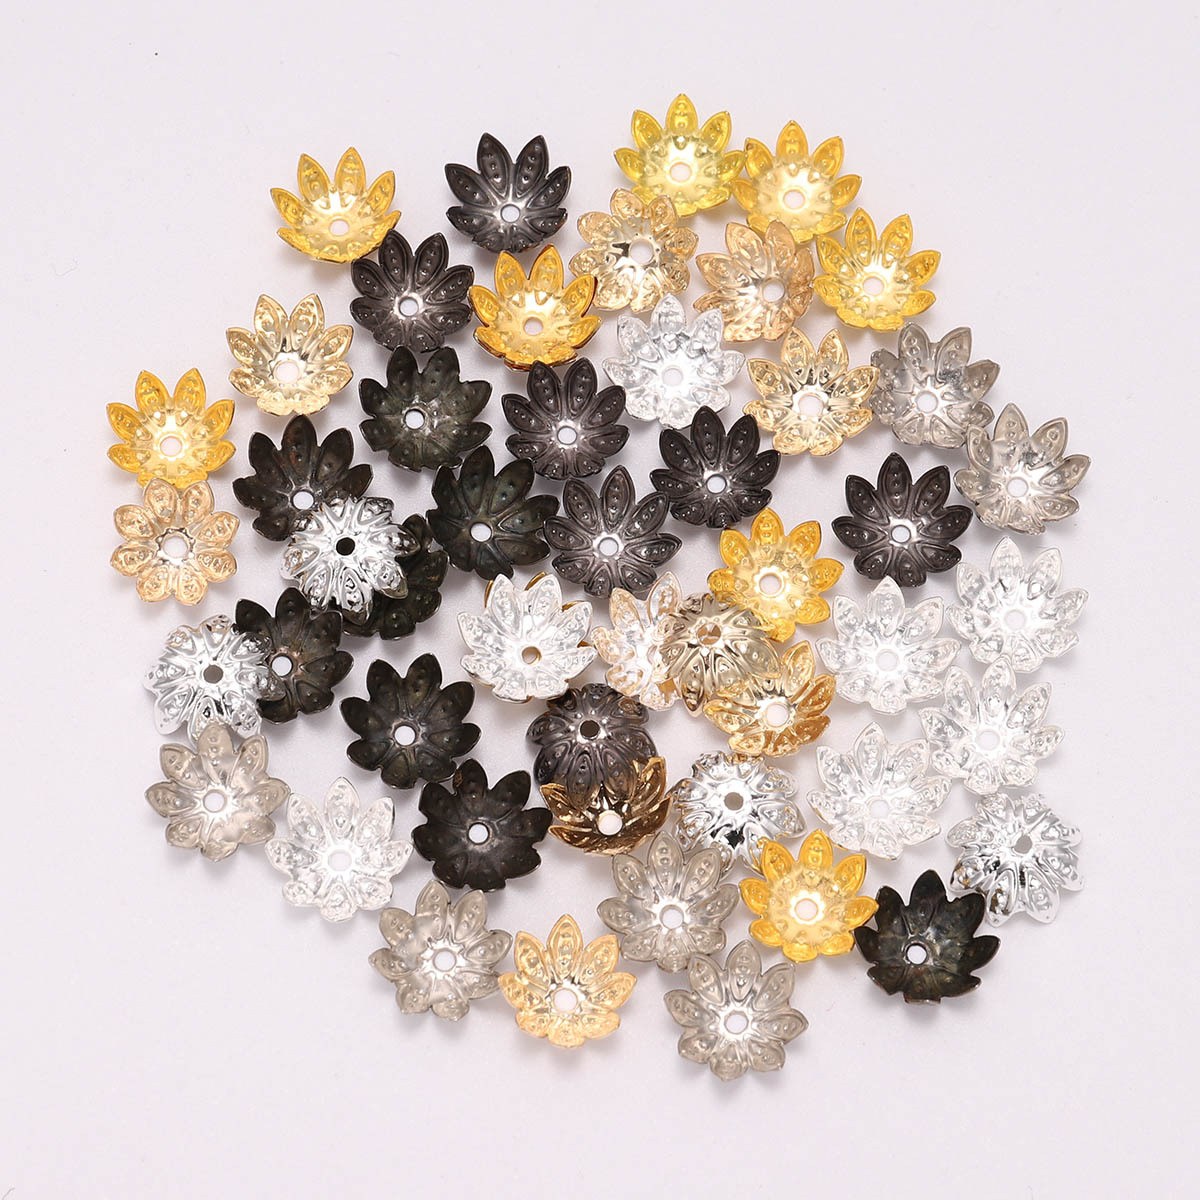 Beading Supplies 500pcs Alloy Hollow Flower End Bead Caps Jewelry Findings 21mm